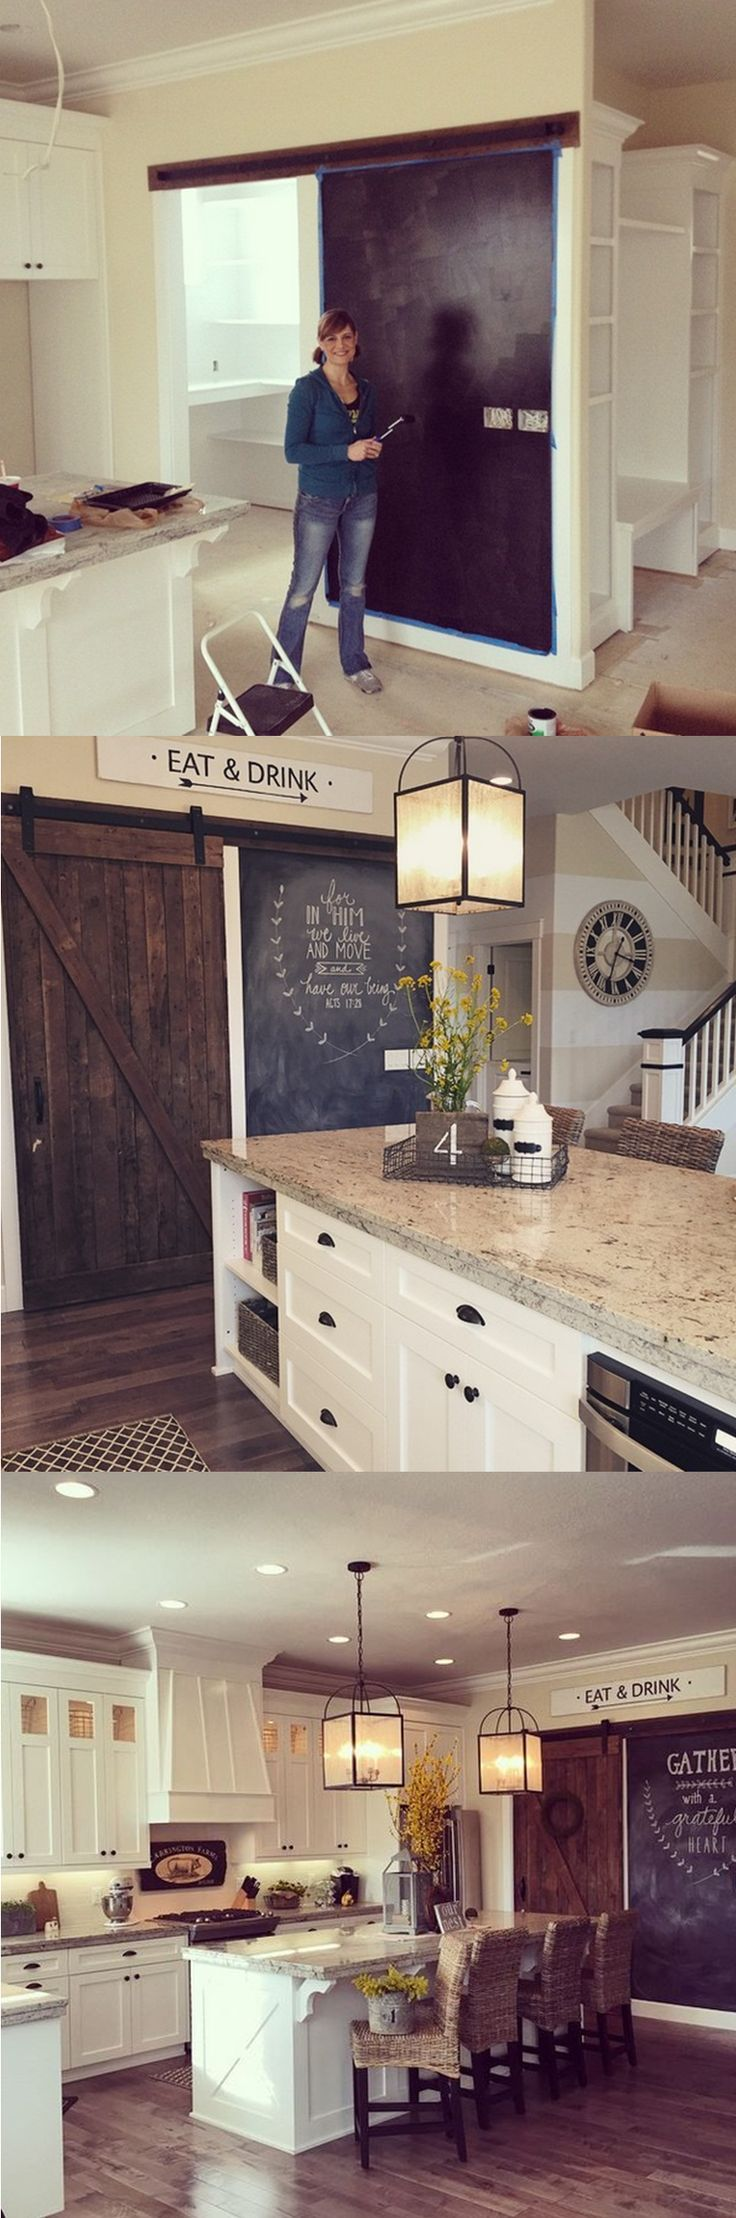 best top rustic kitchens images on pinterest home ideas